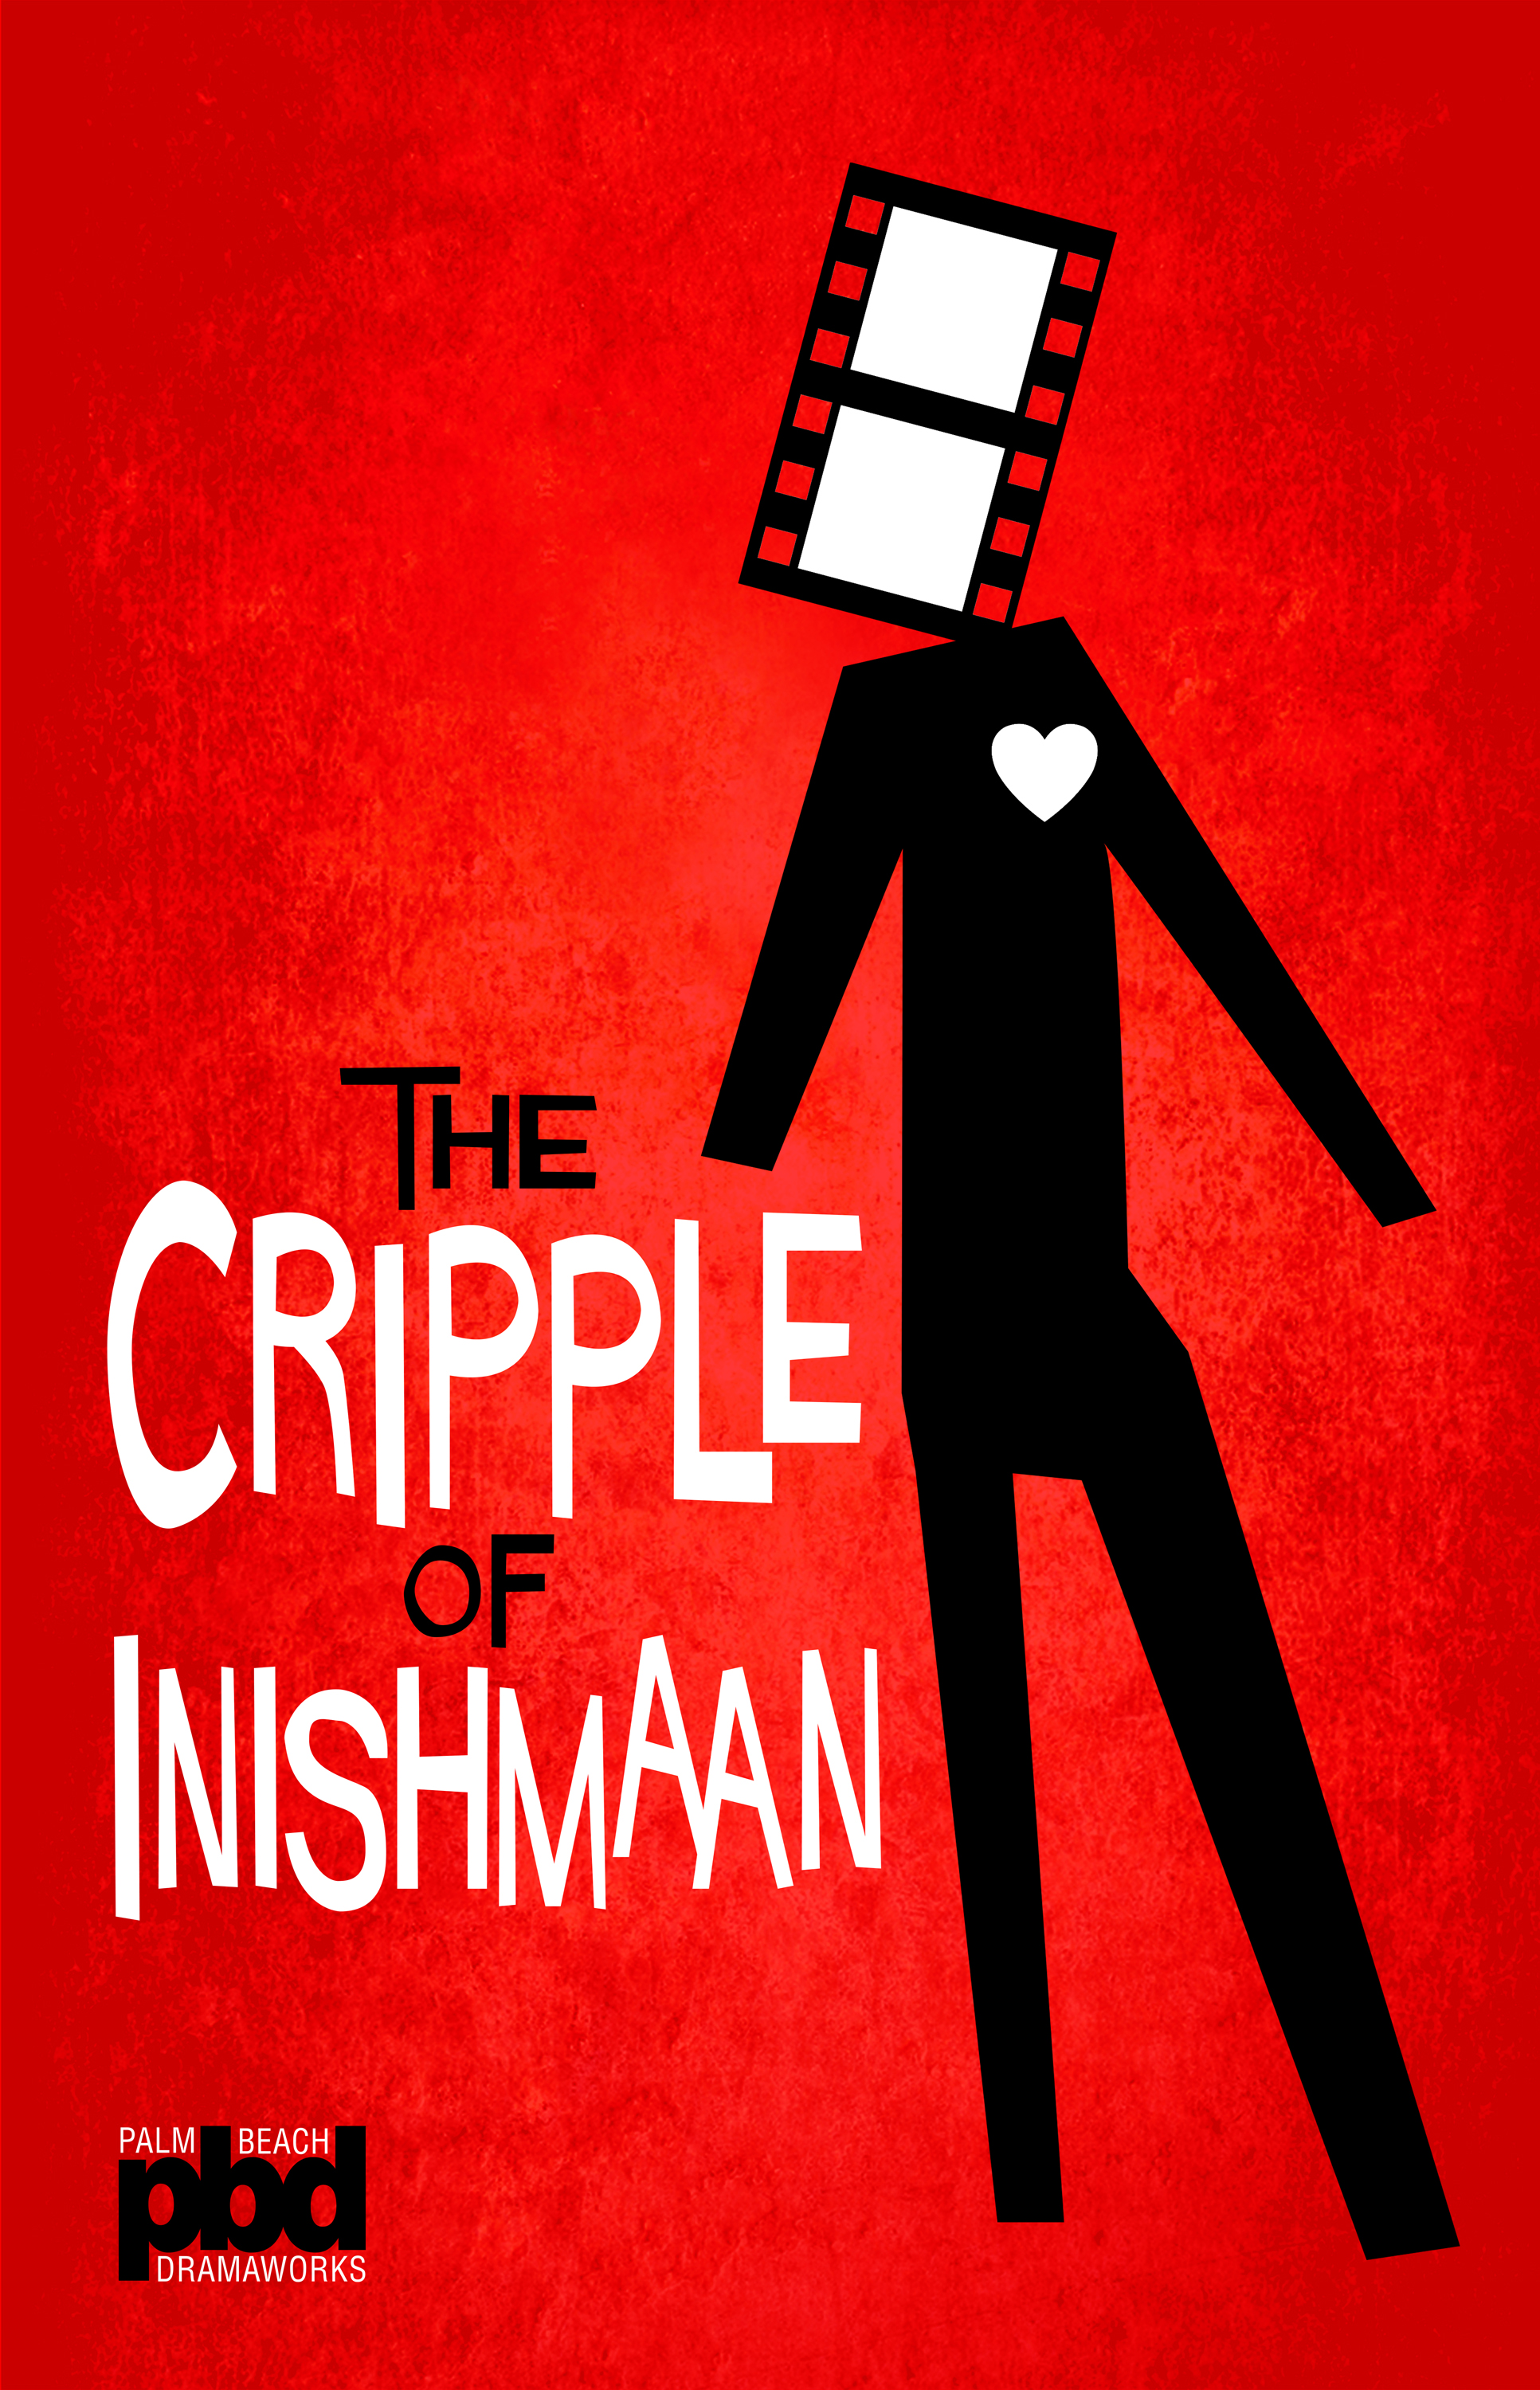 'The Cripple of Inishmaan' by Martin McDonagh, 2017